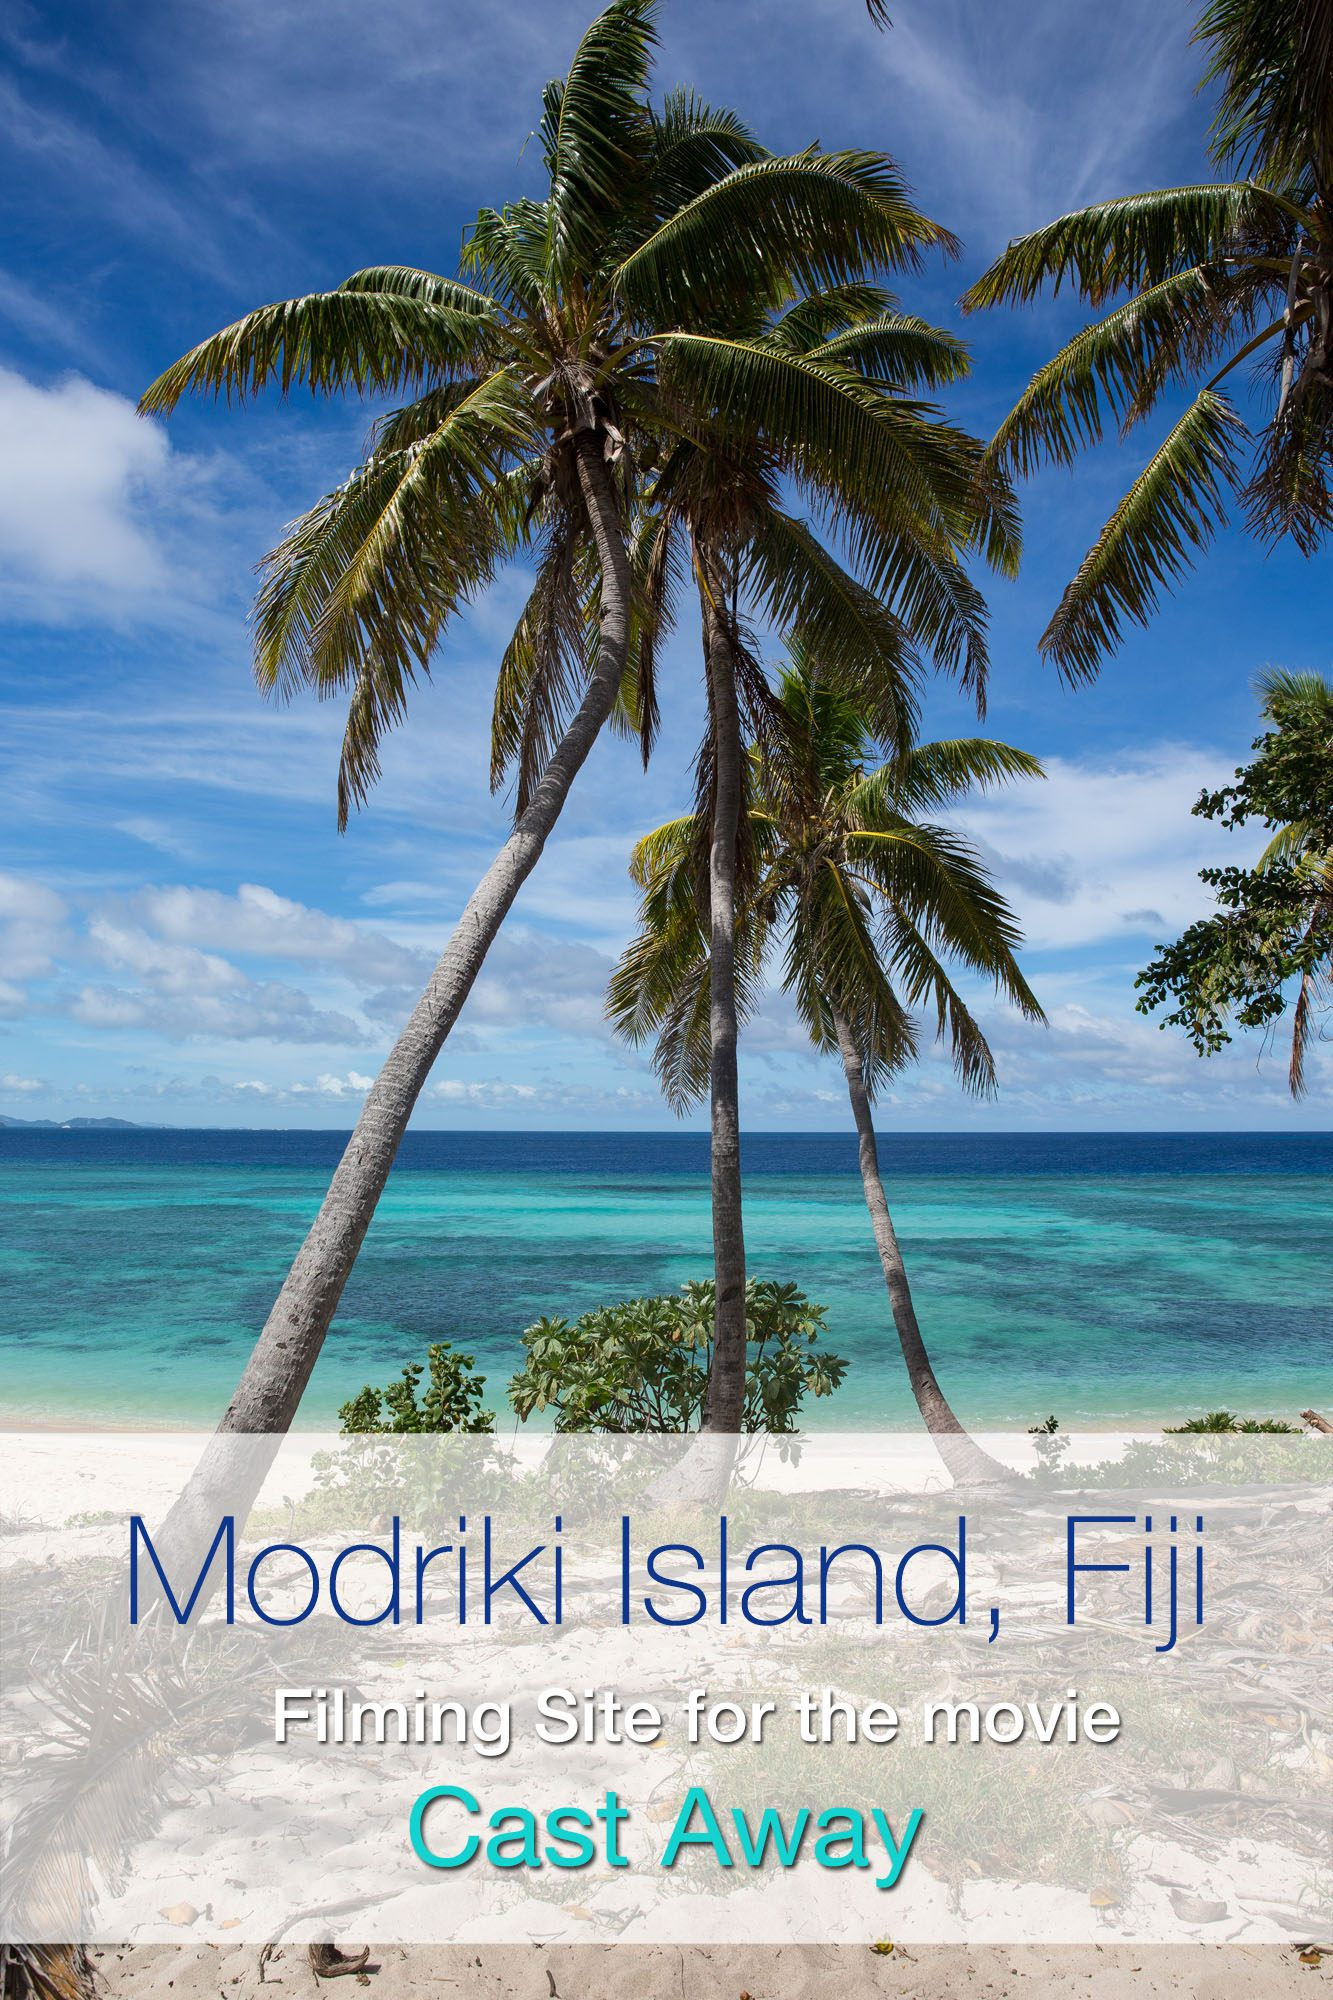 Modriki Island Fiji Cast Away